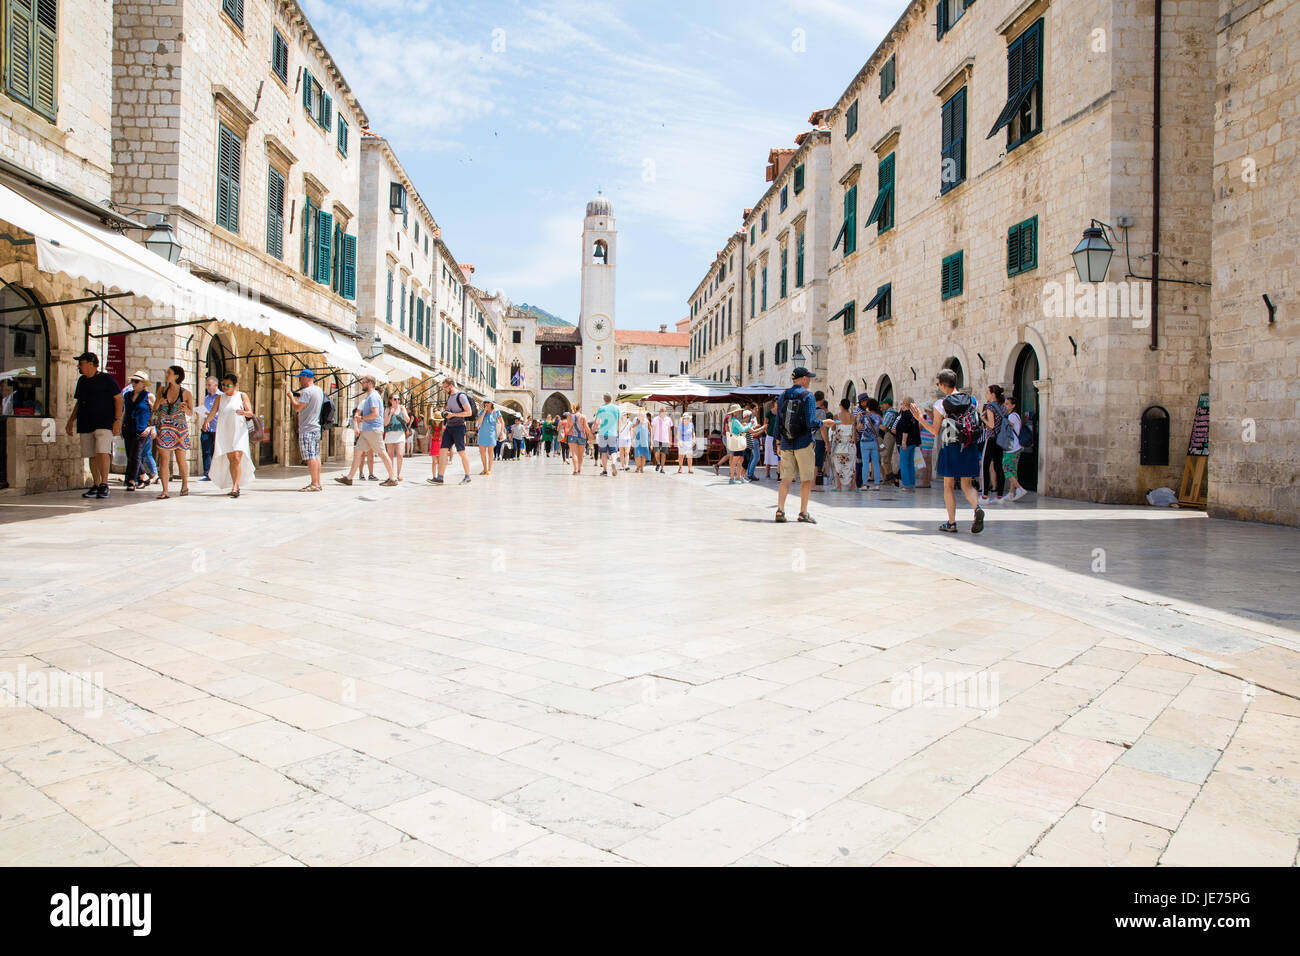 Marble paving polished by centuries of human feet on the Stradun the main street of the Old City of Dubrovnik Croatia - Stock Image